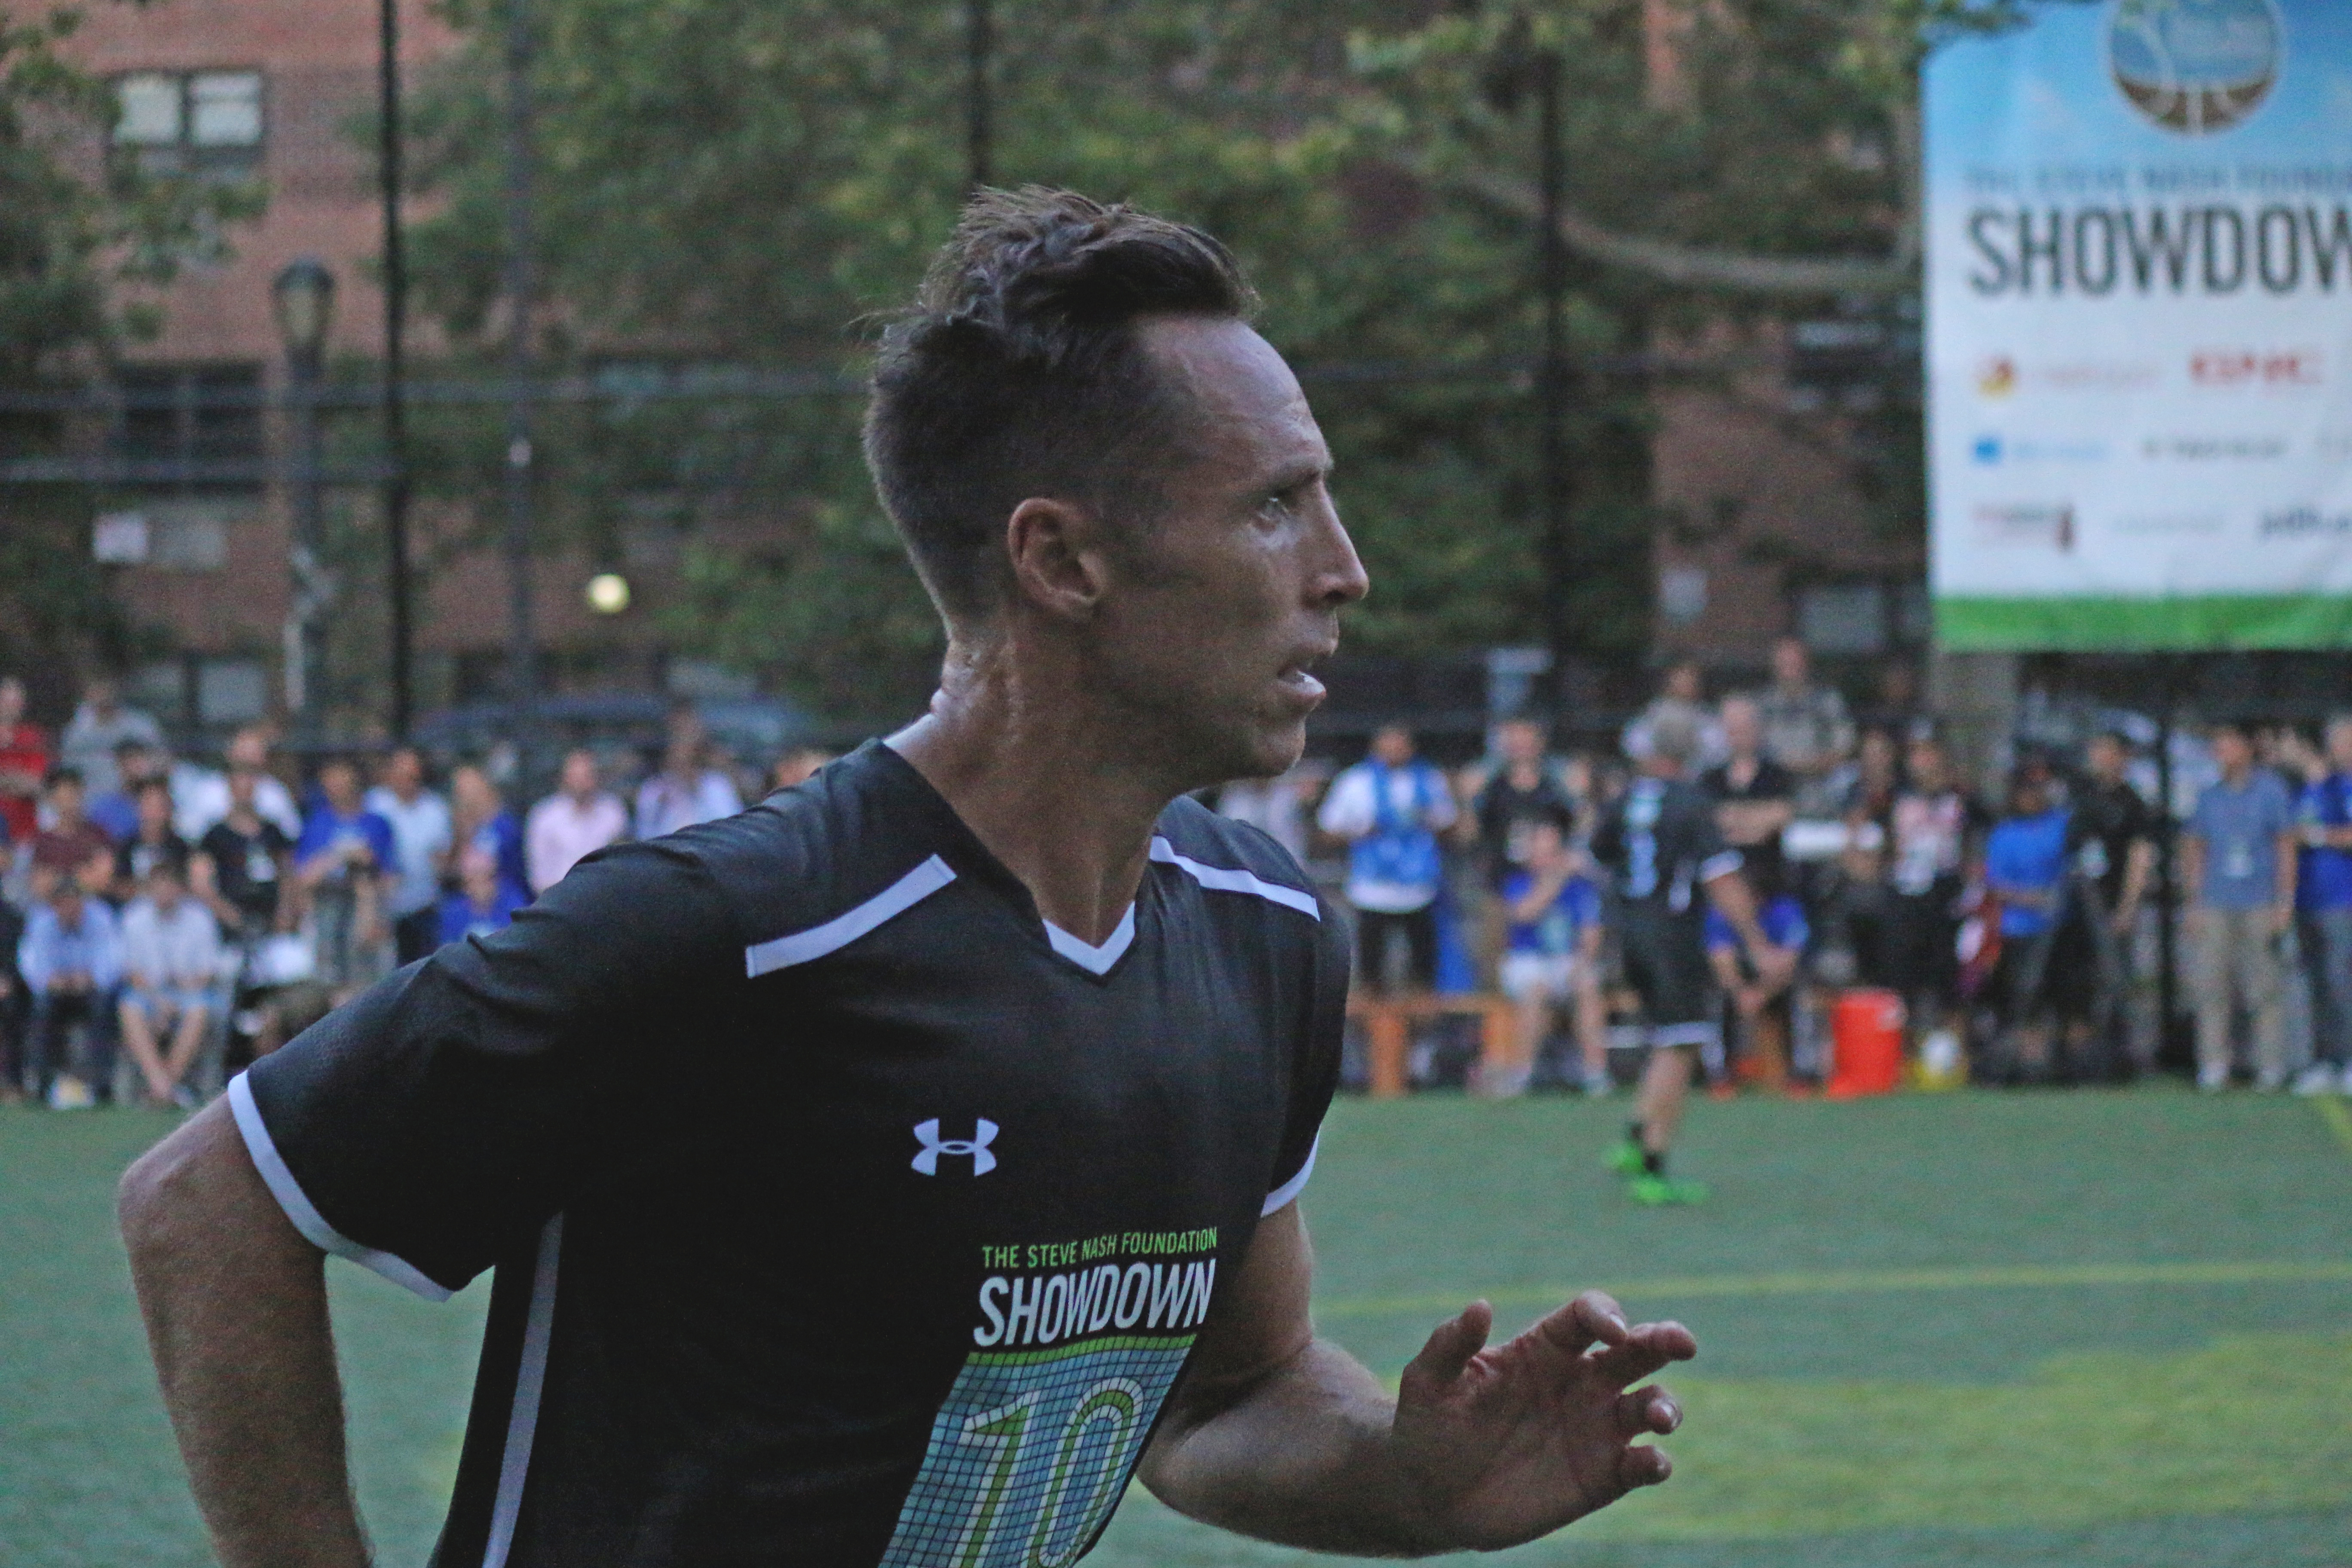 NBA Steve Nash Foundation 2015 Annual Charity Soccer Showdown